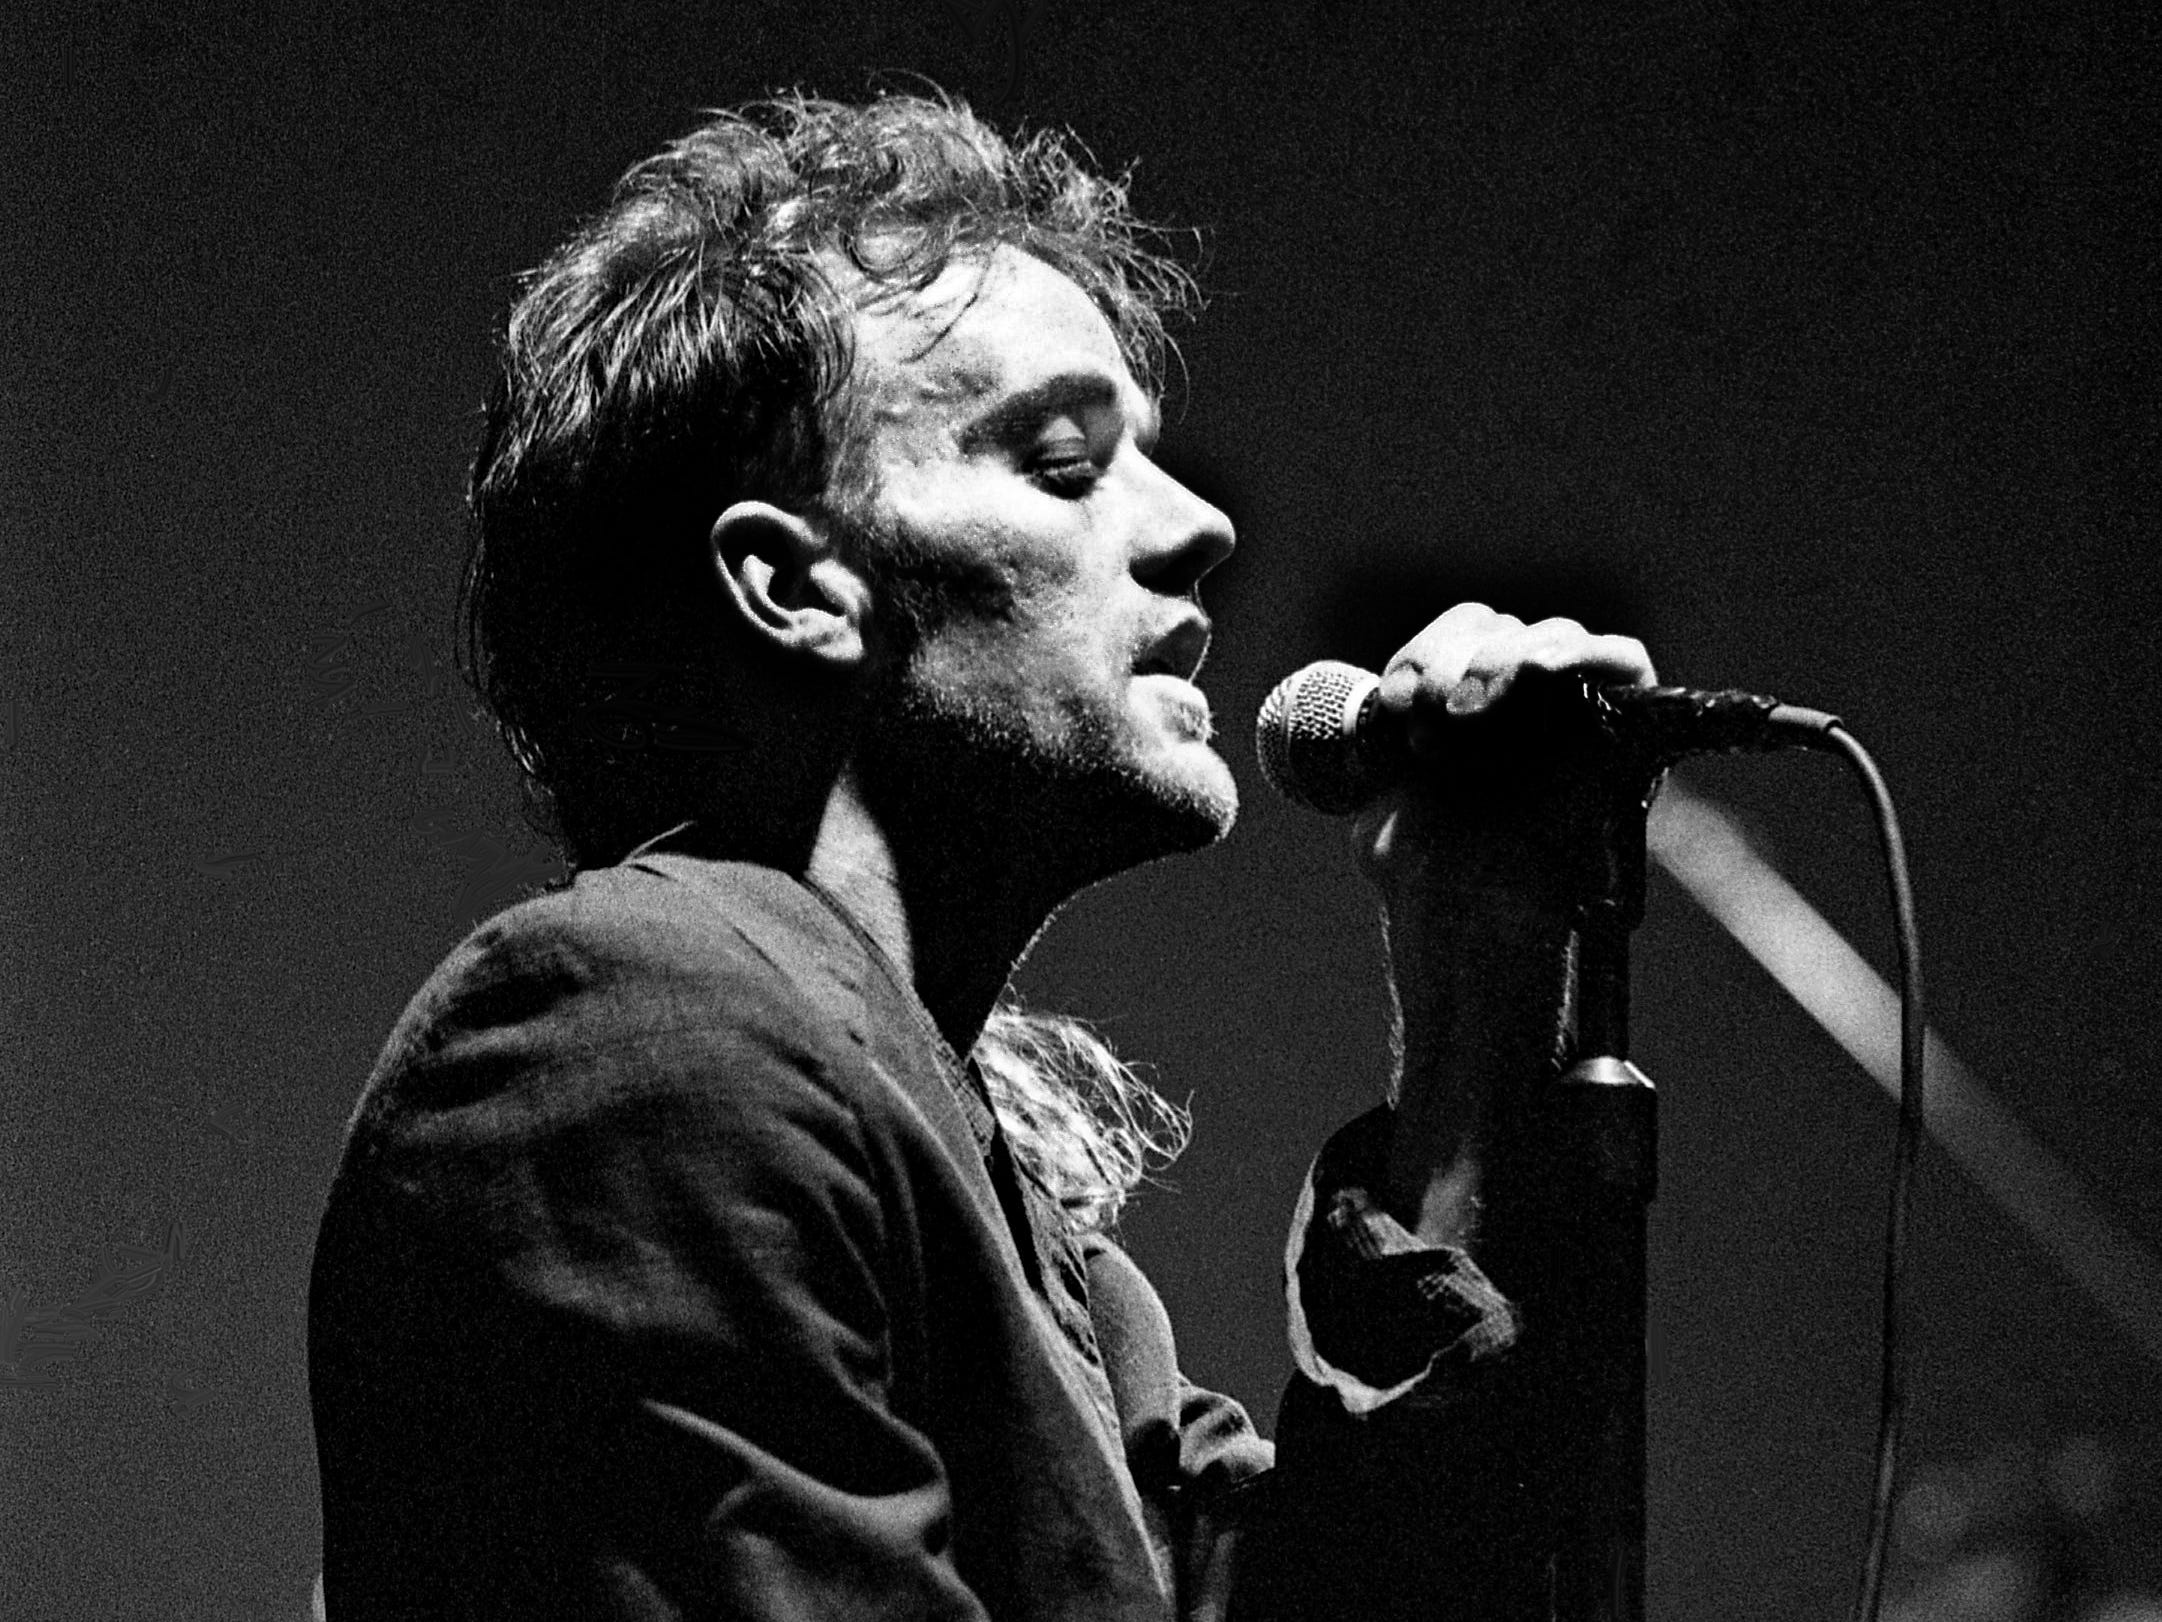 """Michael Stipe, lead singer for the rock band R.E.M., performs """"Pop Song 89"""" as the group kicks off its concert before about 10,000 fans at MTSU's Murphy Center in Murfreesboro on March 31, 1989. R.E.M. performed most of its new album """"Green,"""" as well as selections from earlier discs."""